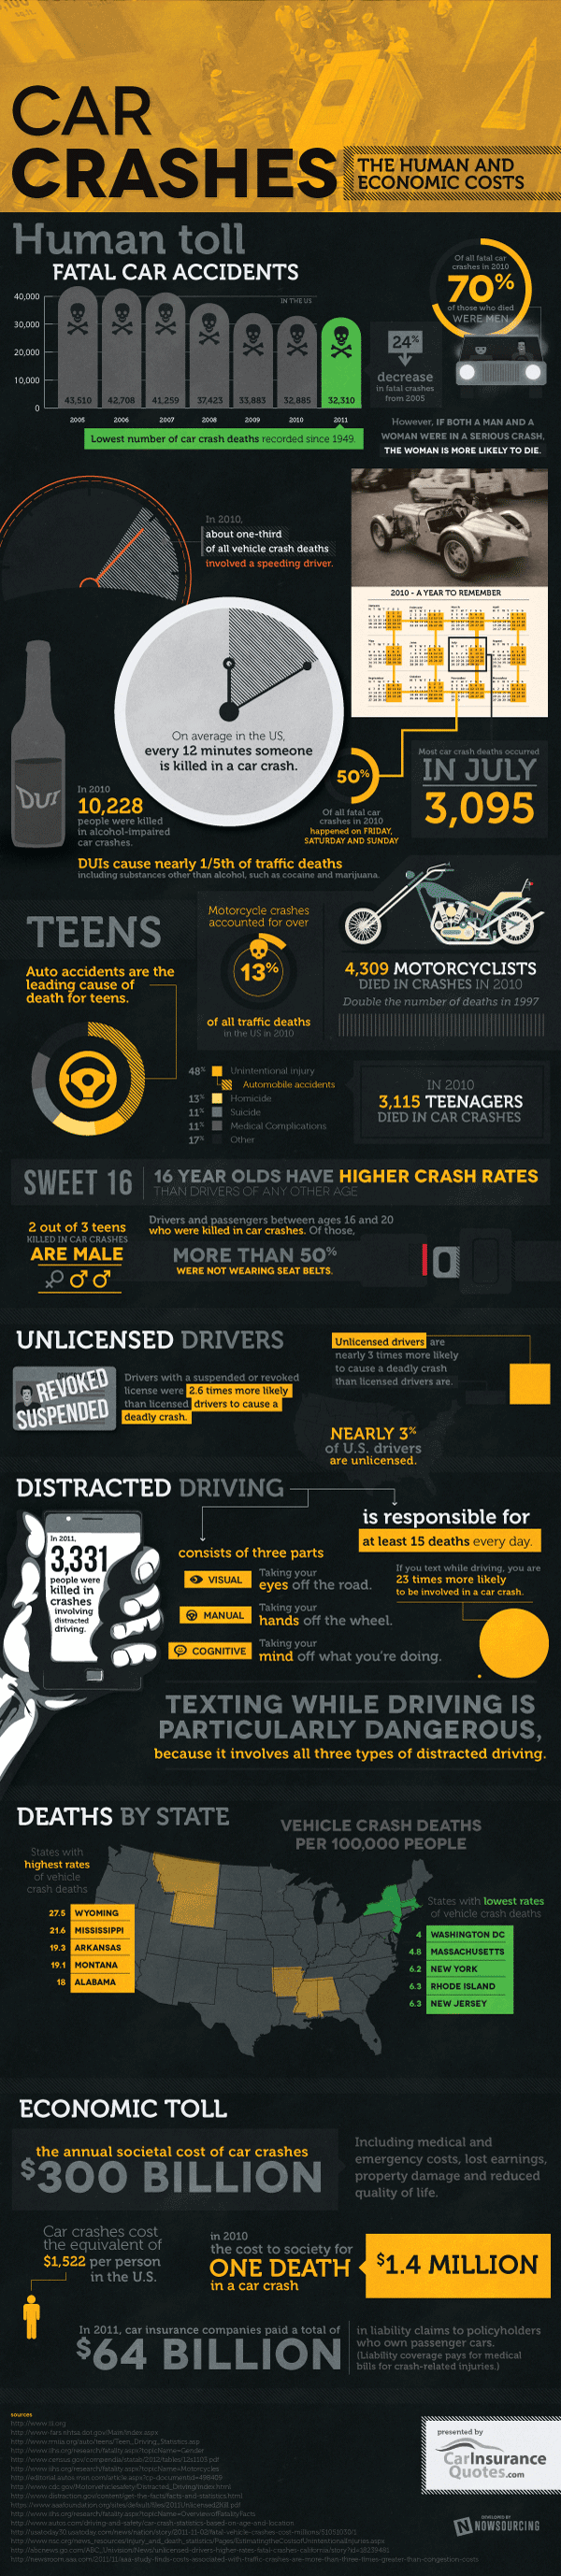 US Car Crash Statistics 2011-Infographic